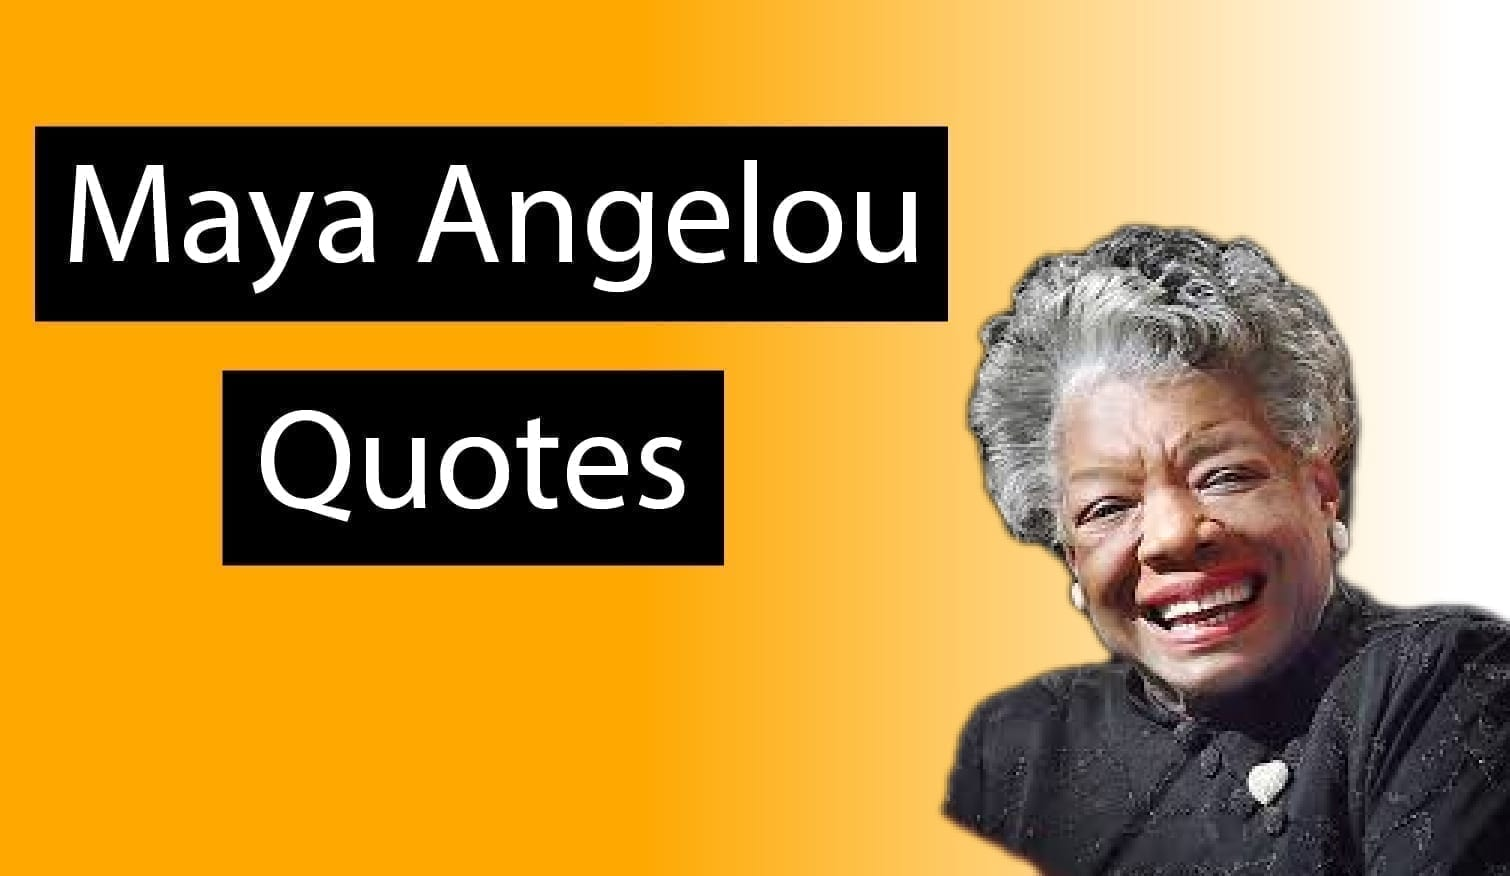 The 20 Best Quotes from Maya Angelou